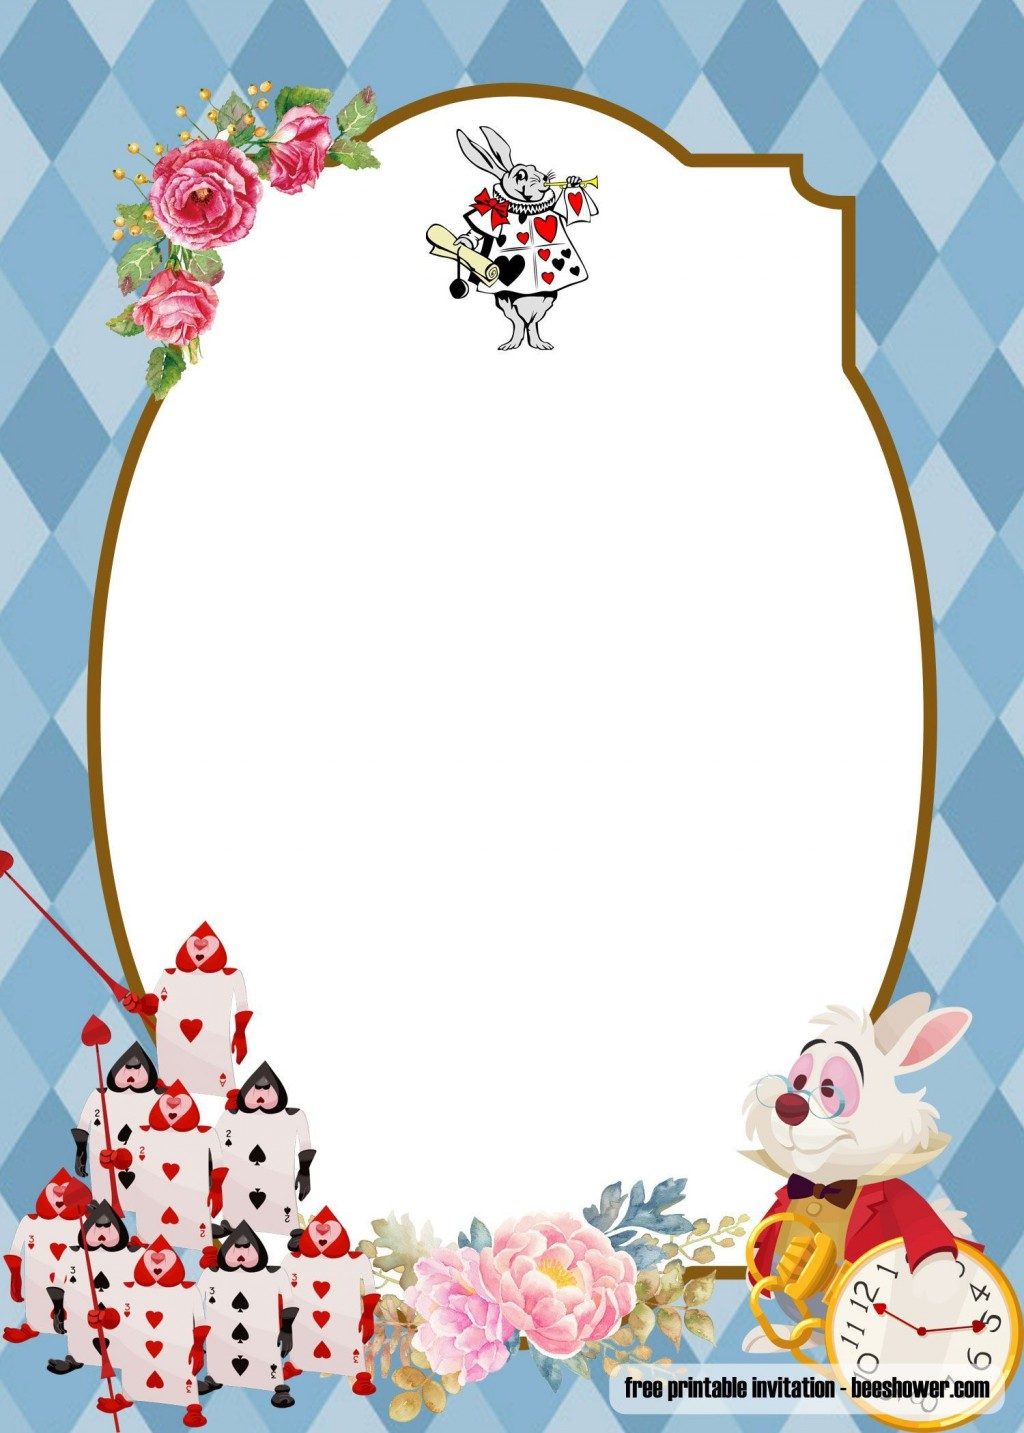 005 Fearsome Alice In Wonderland Tea Party Template Photo  Templates Invitation FreeLarge